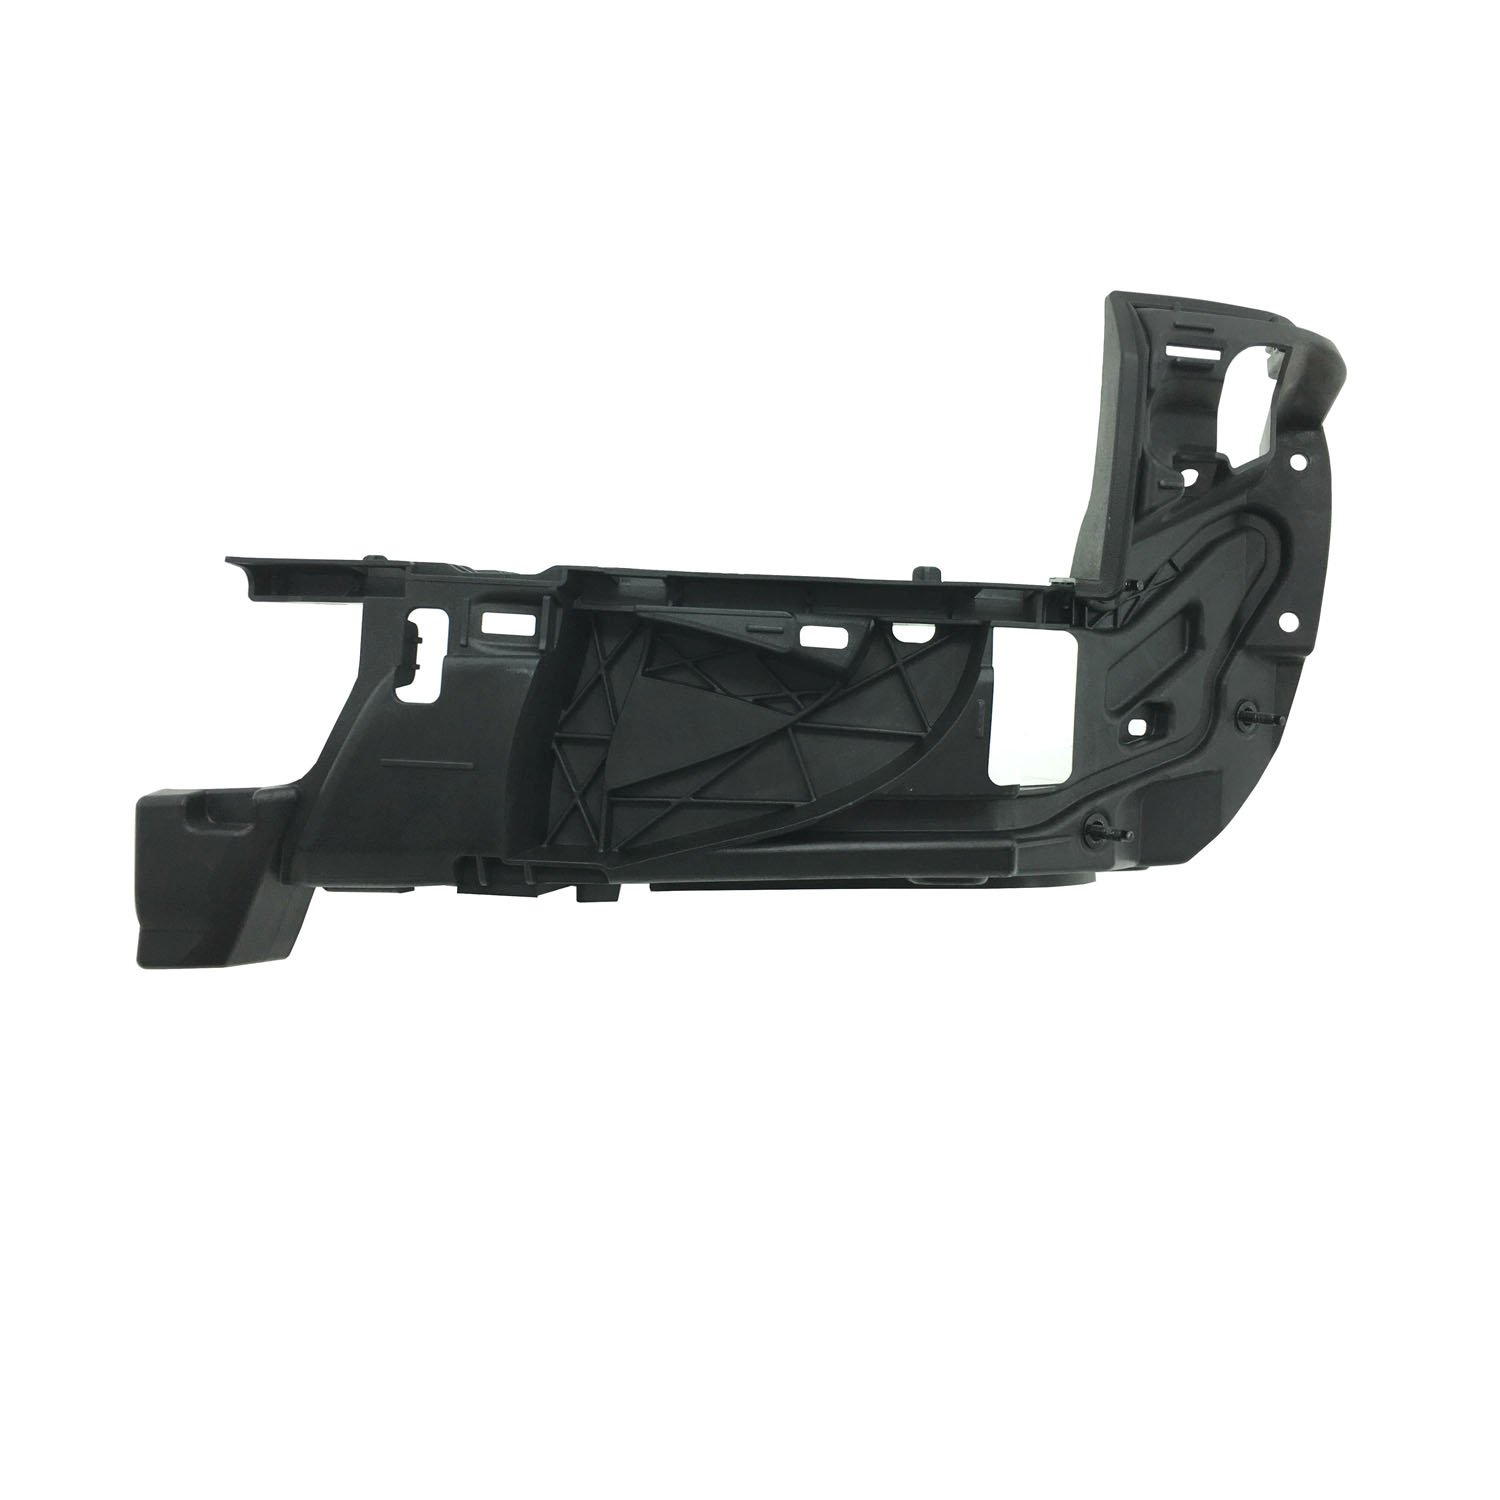 CPP Rear Right Polypropelene Bumper Extension for 16 Toyota Tacoma